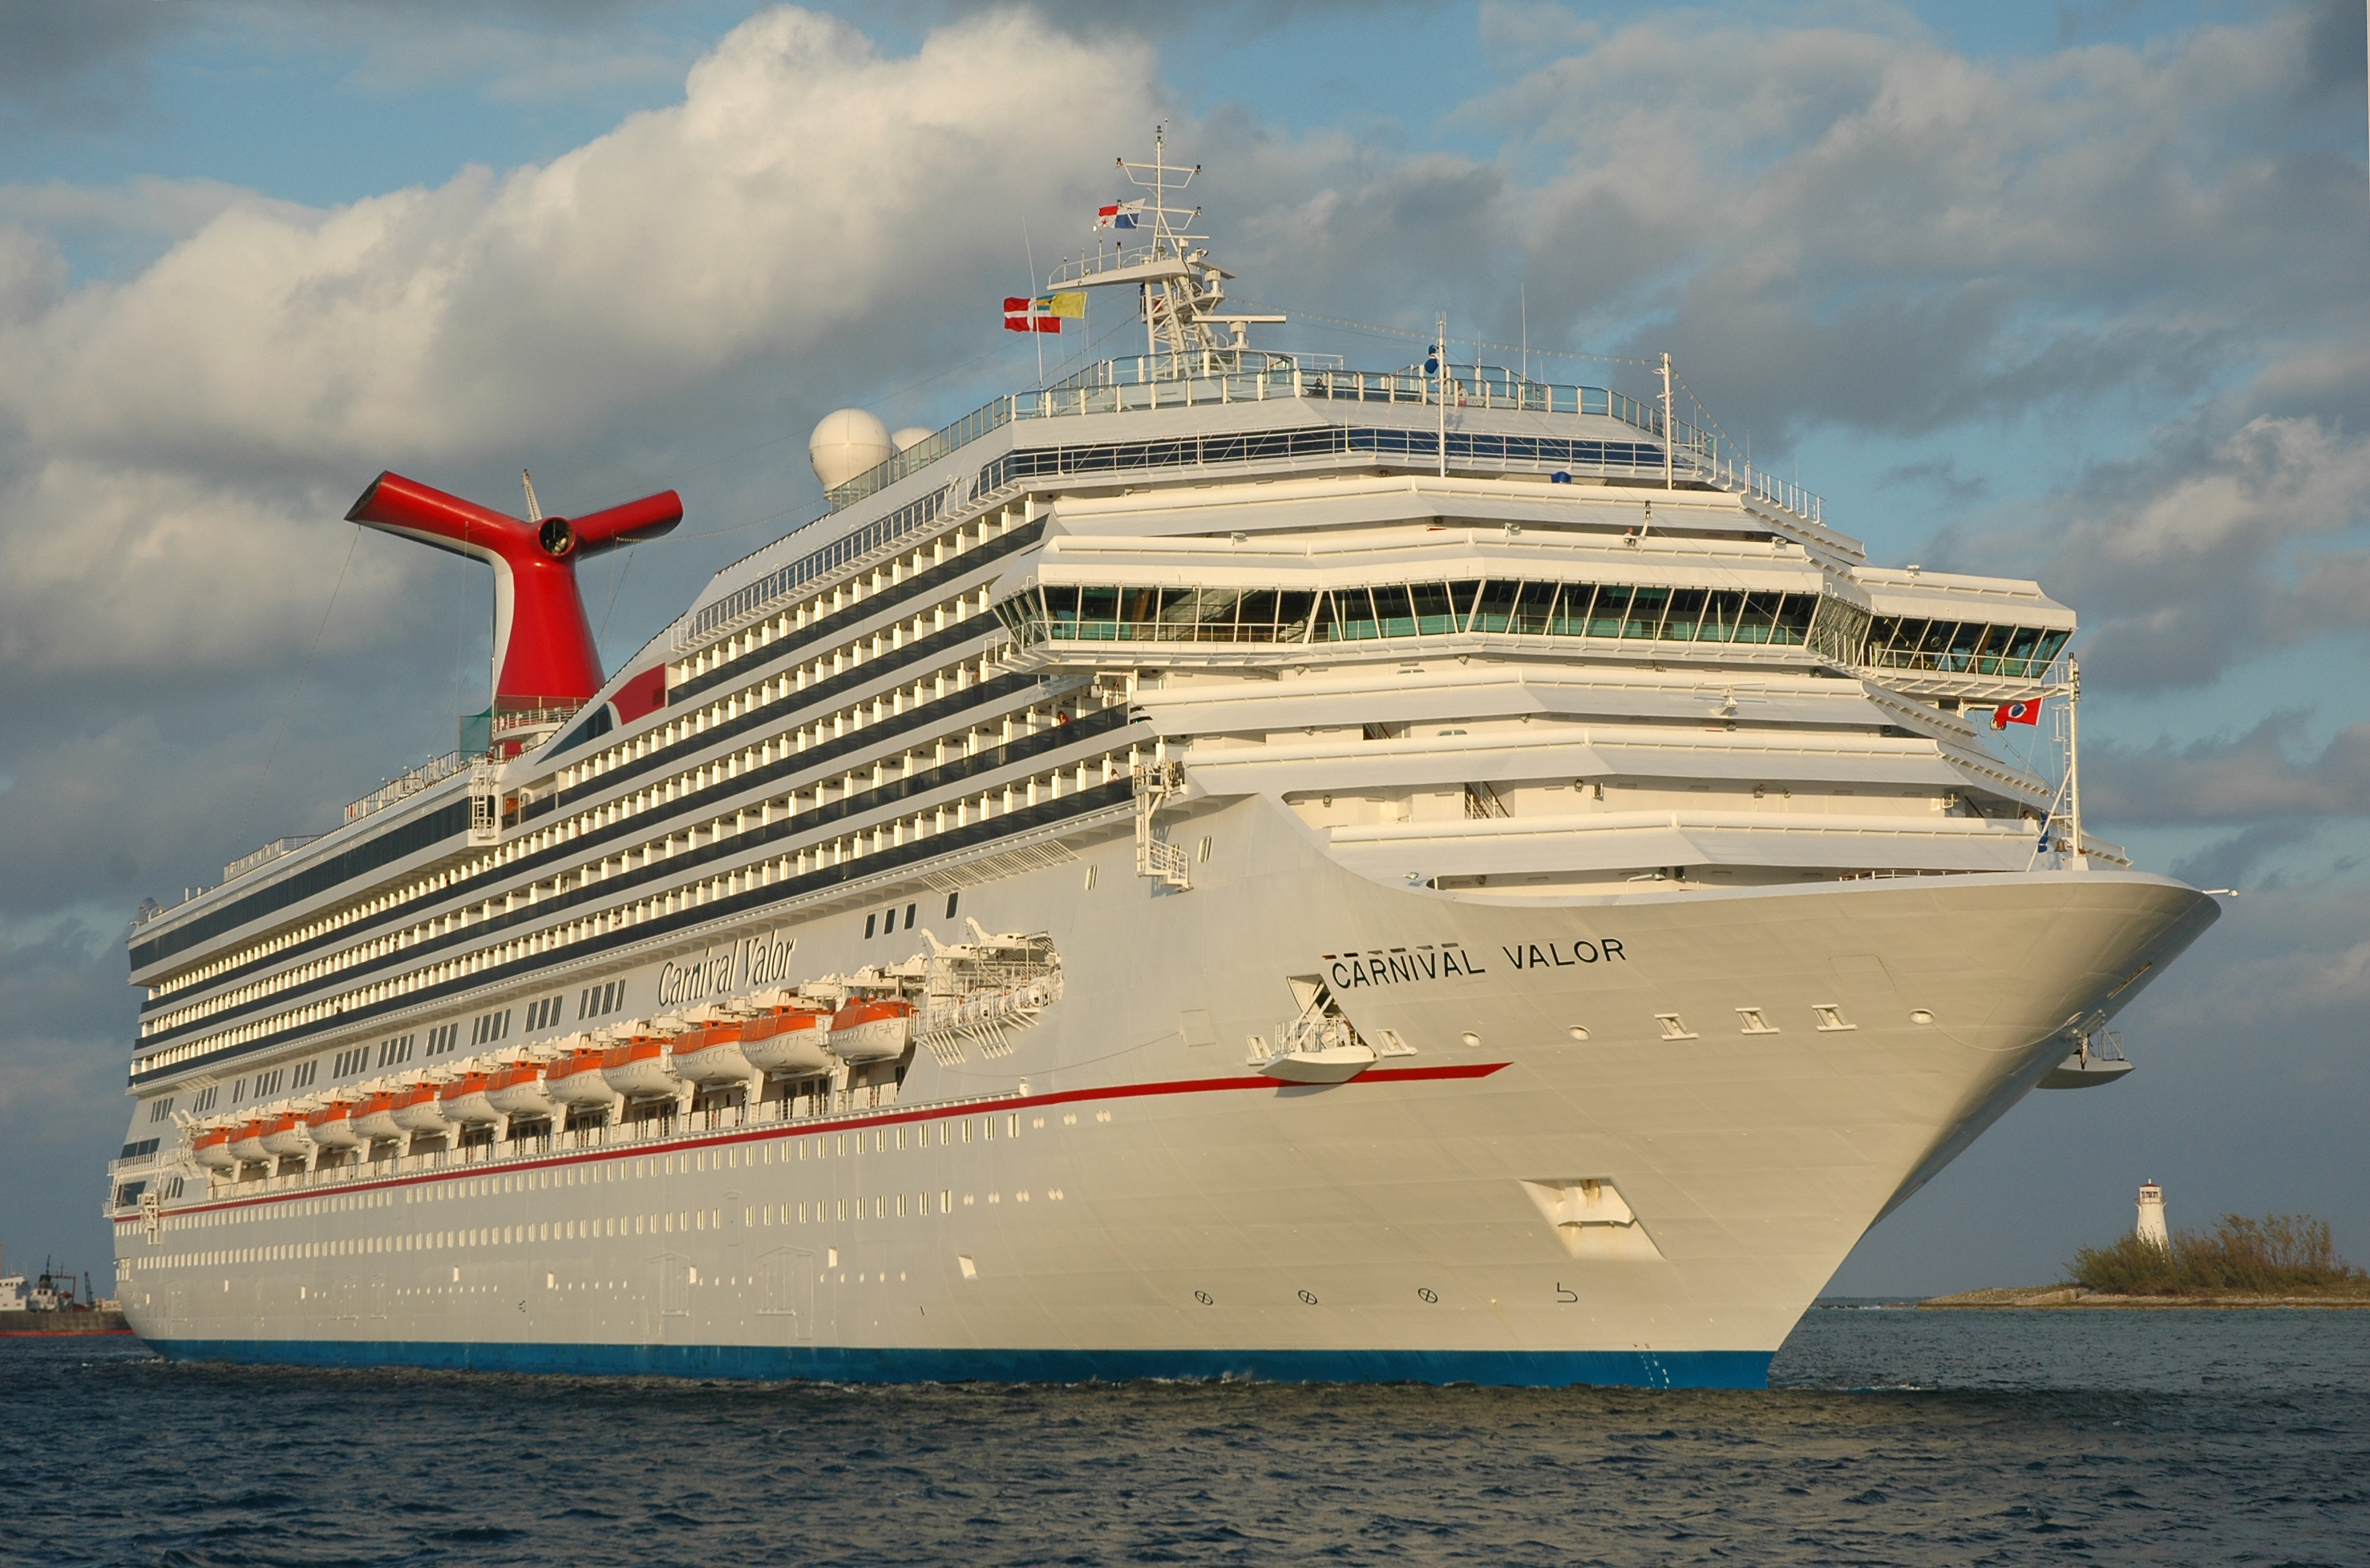 Carnival Valor Returns To Service With New Enhancements Following 14 Day Dry Dock Carnival